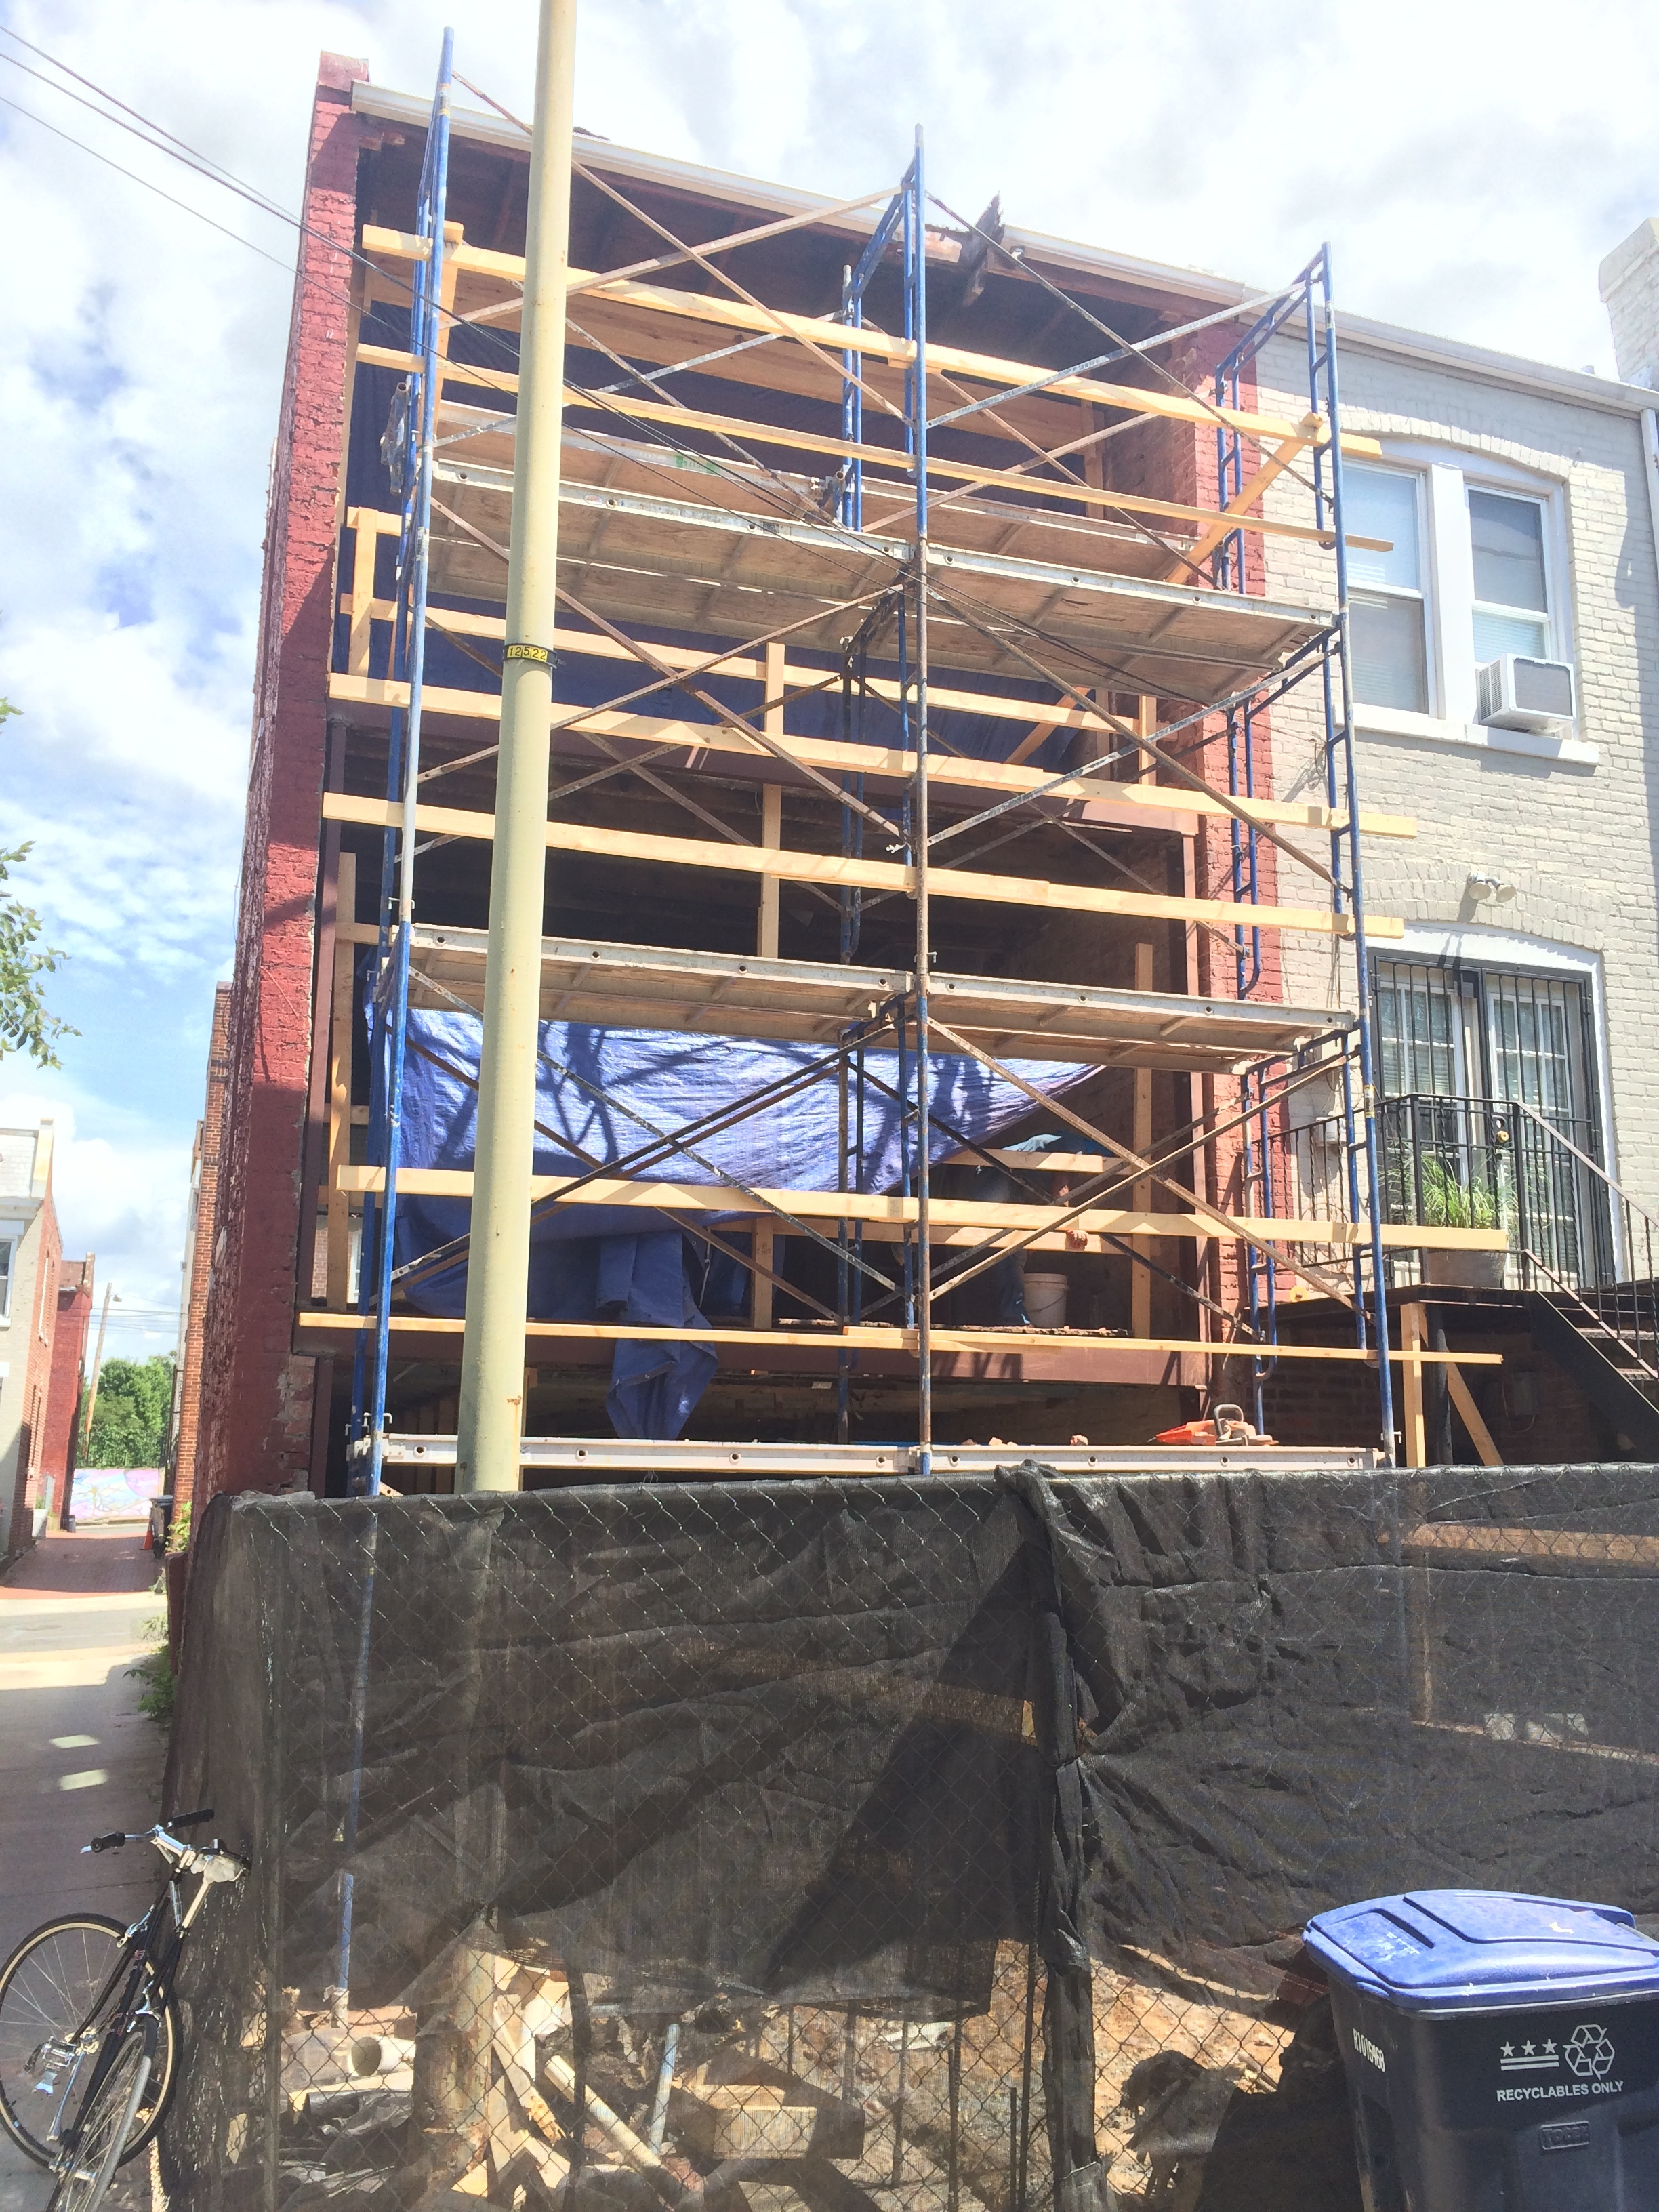 View from rear alley showing scaffolding during installation of steel frame.